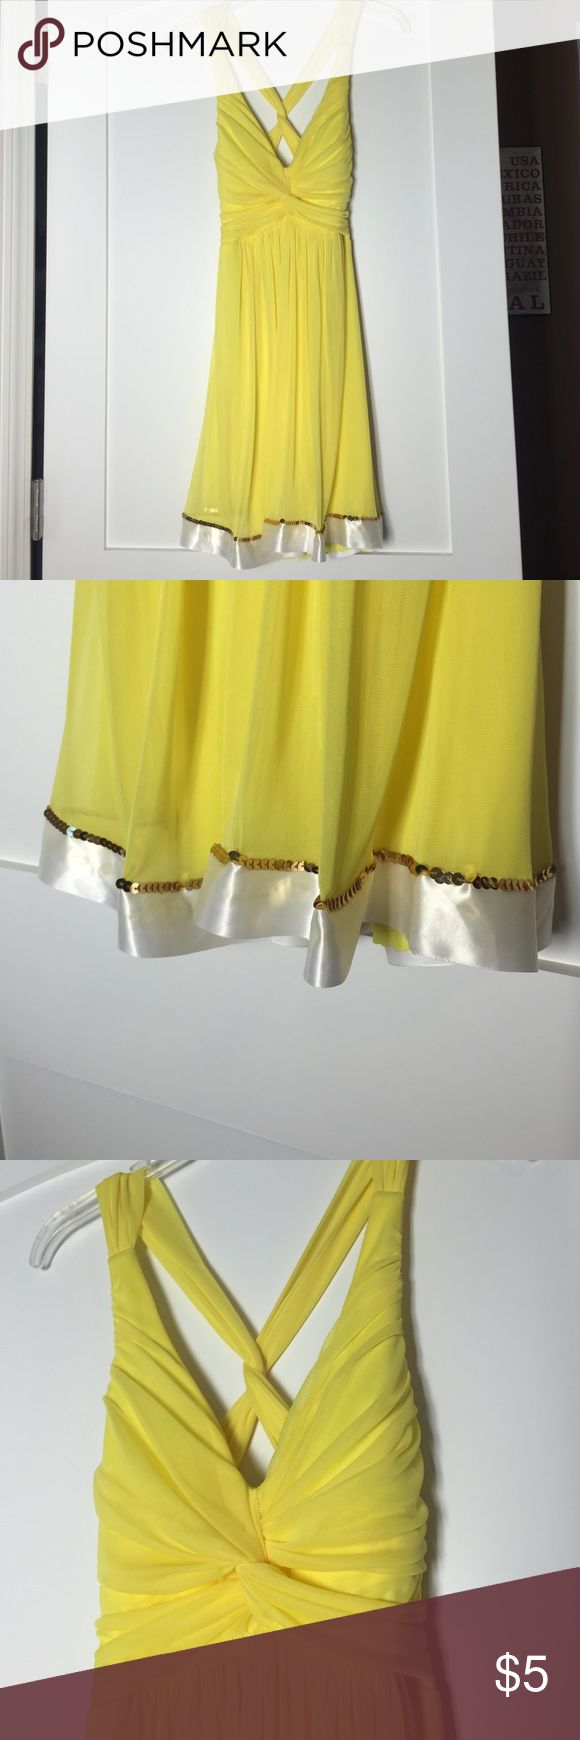 Taboo bright yellow ruched dress Former dance costume can be perfect for a night out, too! This two layered light and bright yellow dress is fun to wear. It has detailed rucking in front and with the open back, and a line of gold sequins and white trim the bottom. Taboo Dresses Mini